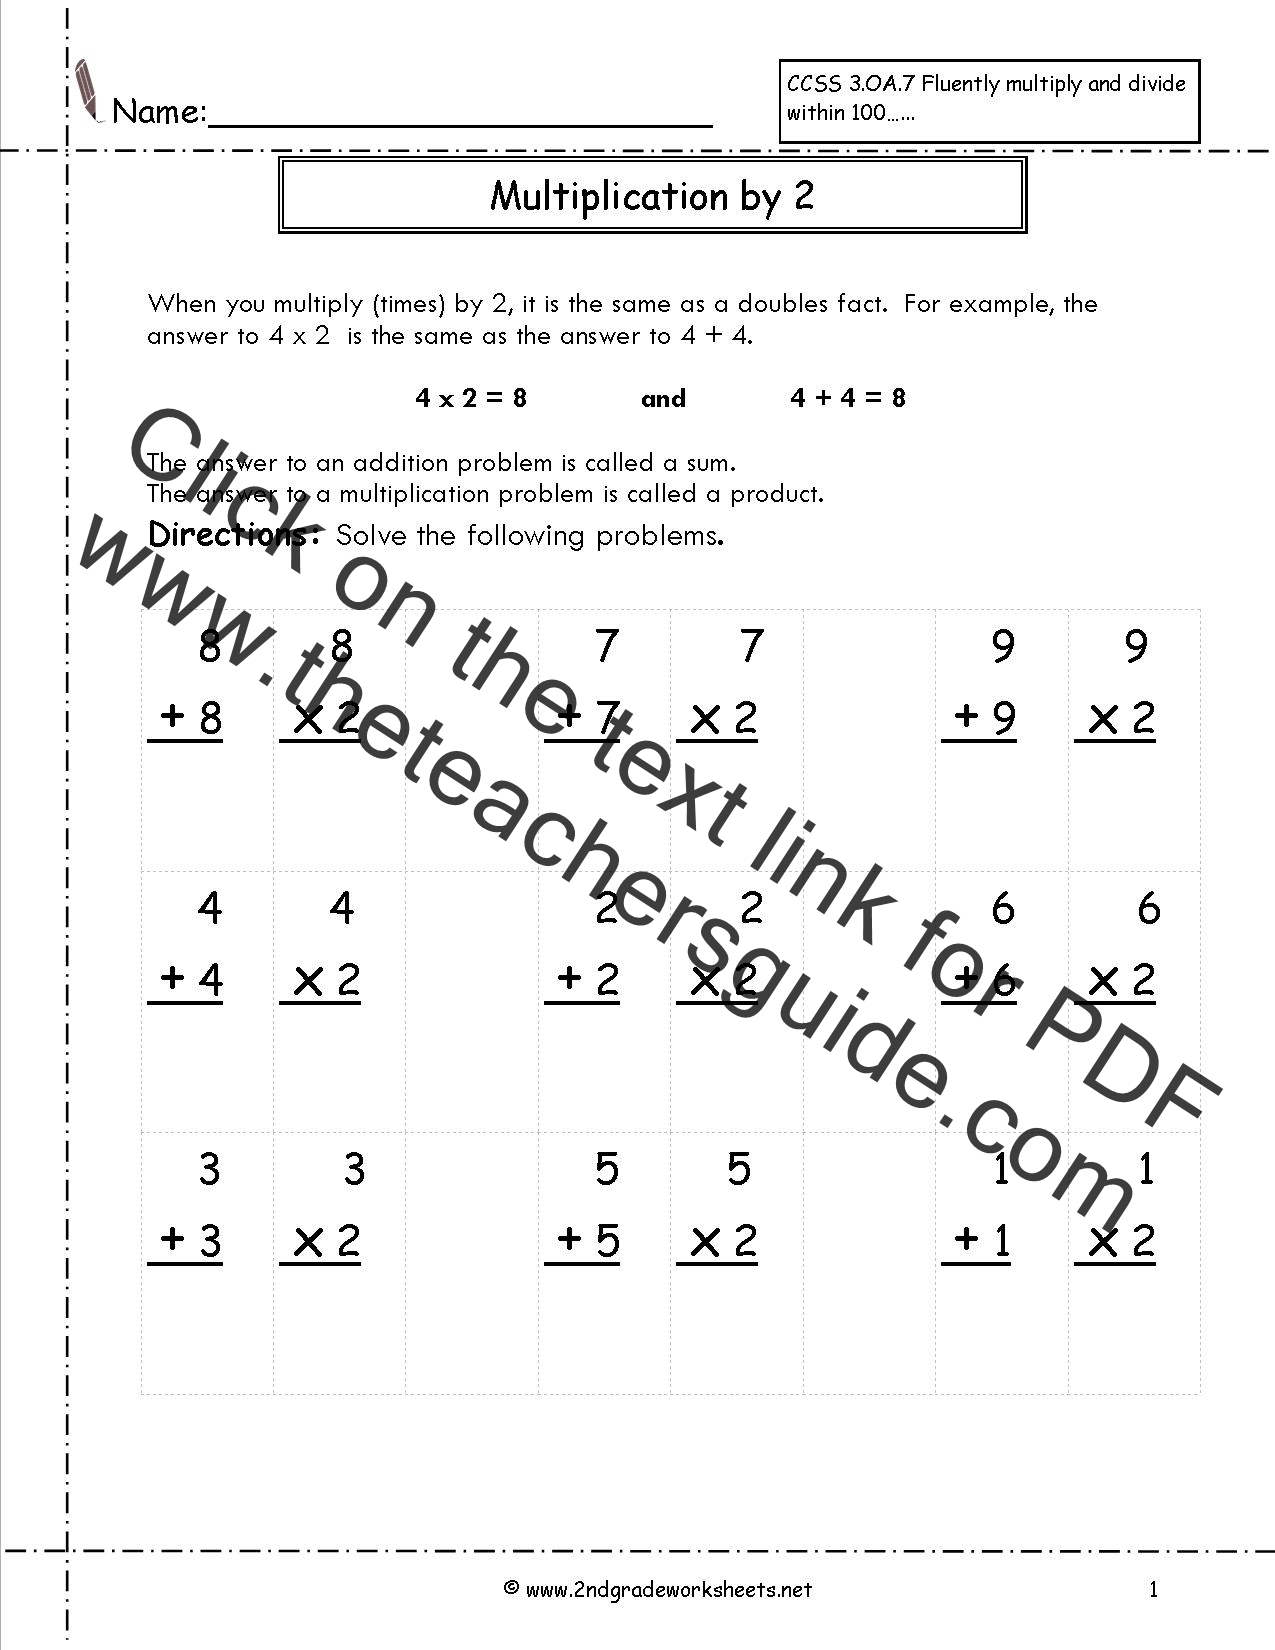 Family Worksheet Multiplication 2